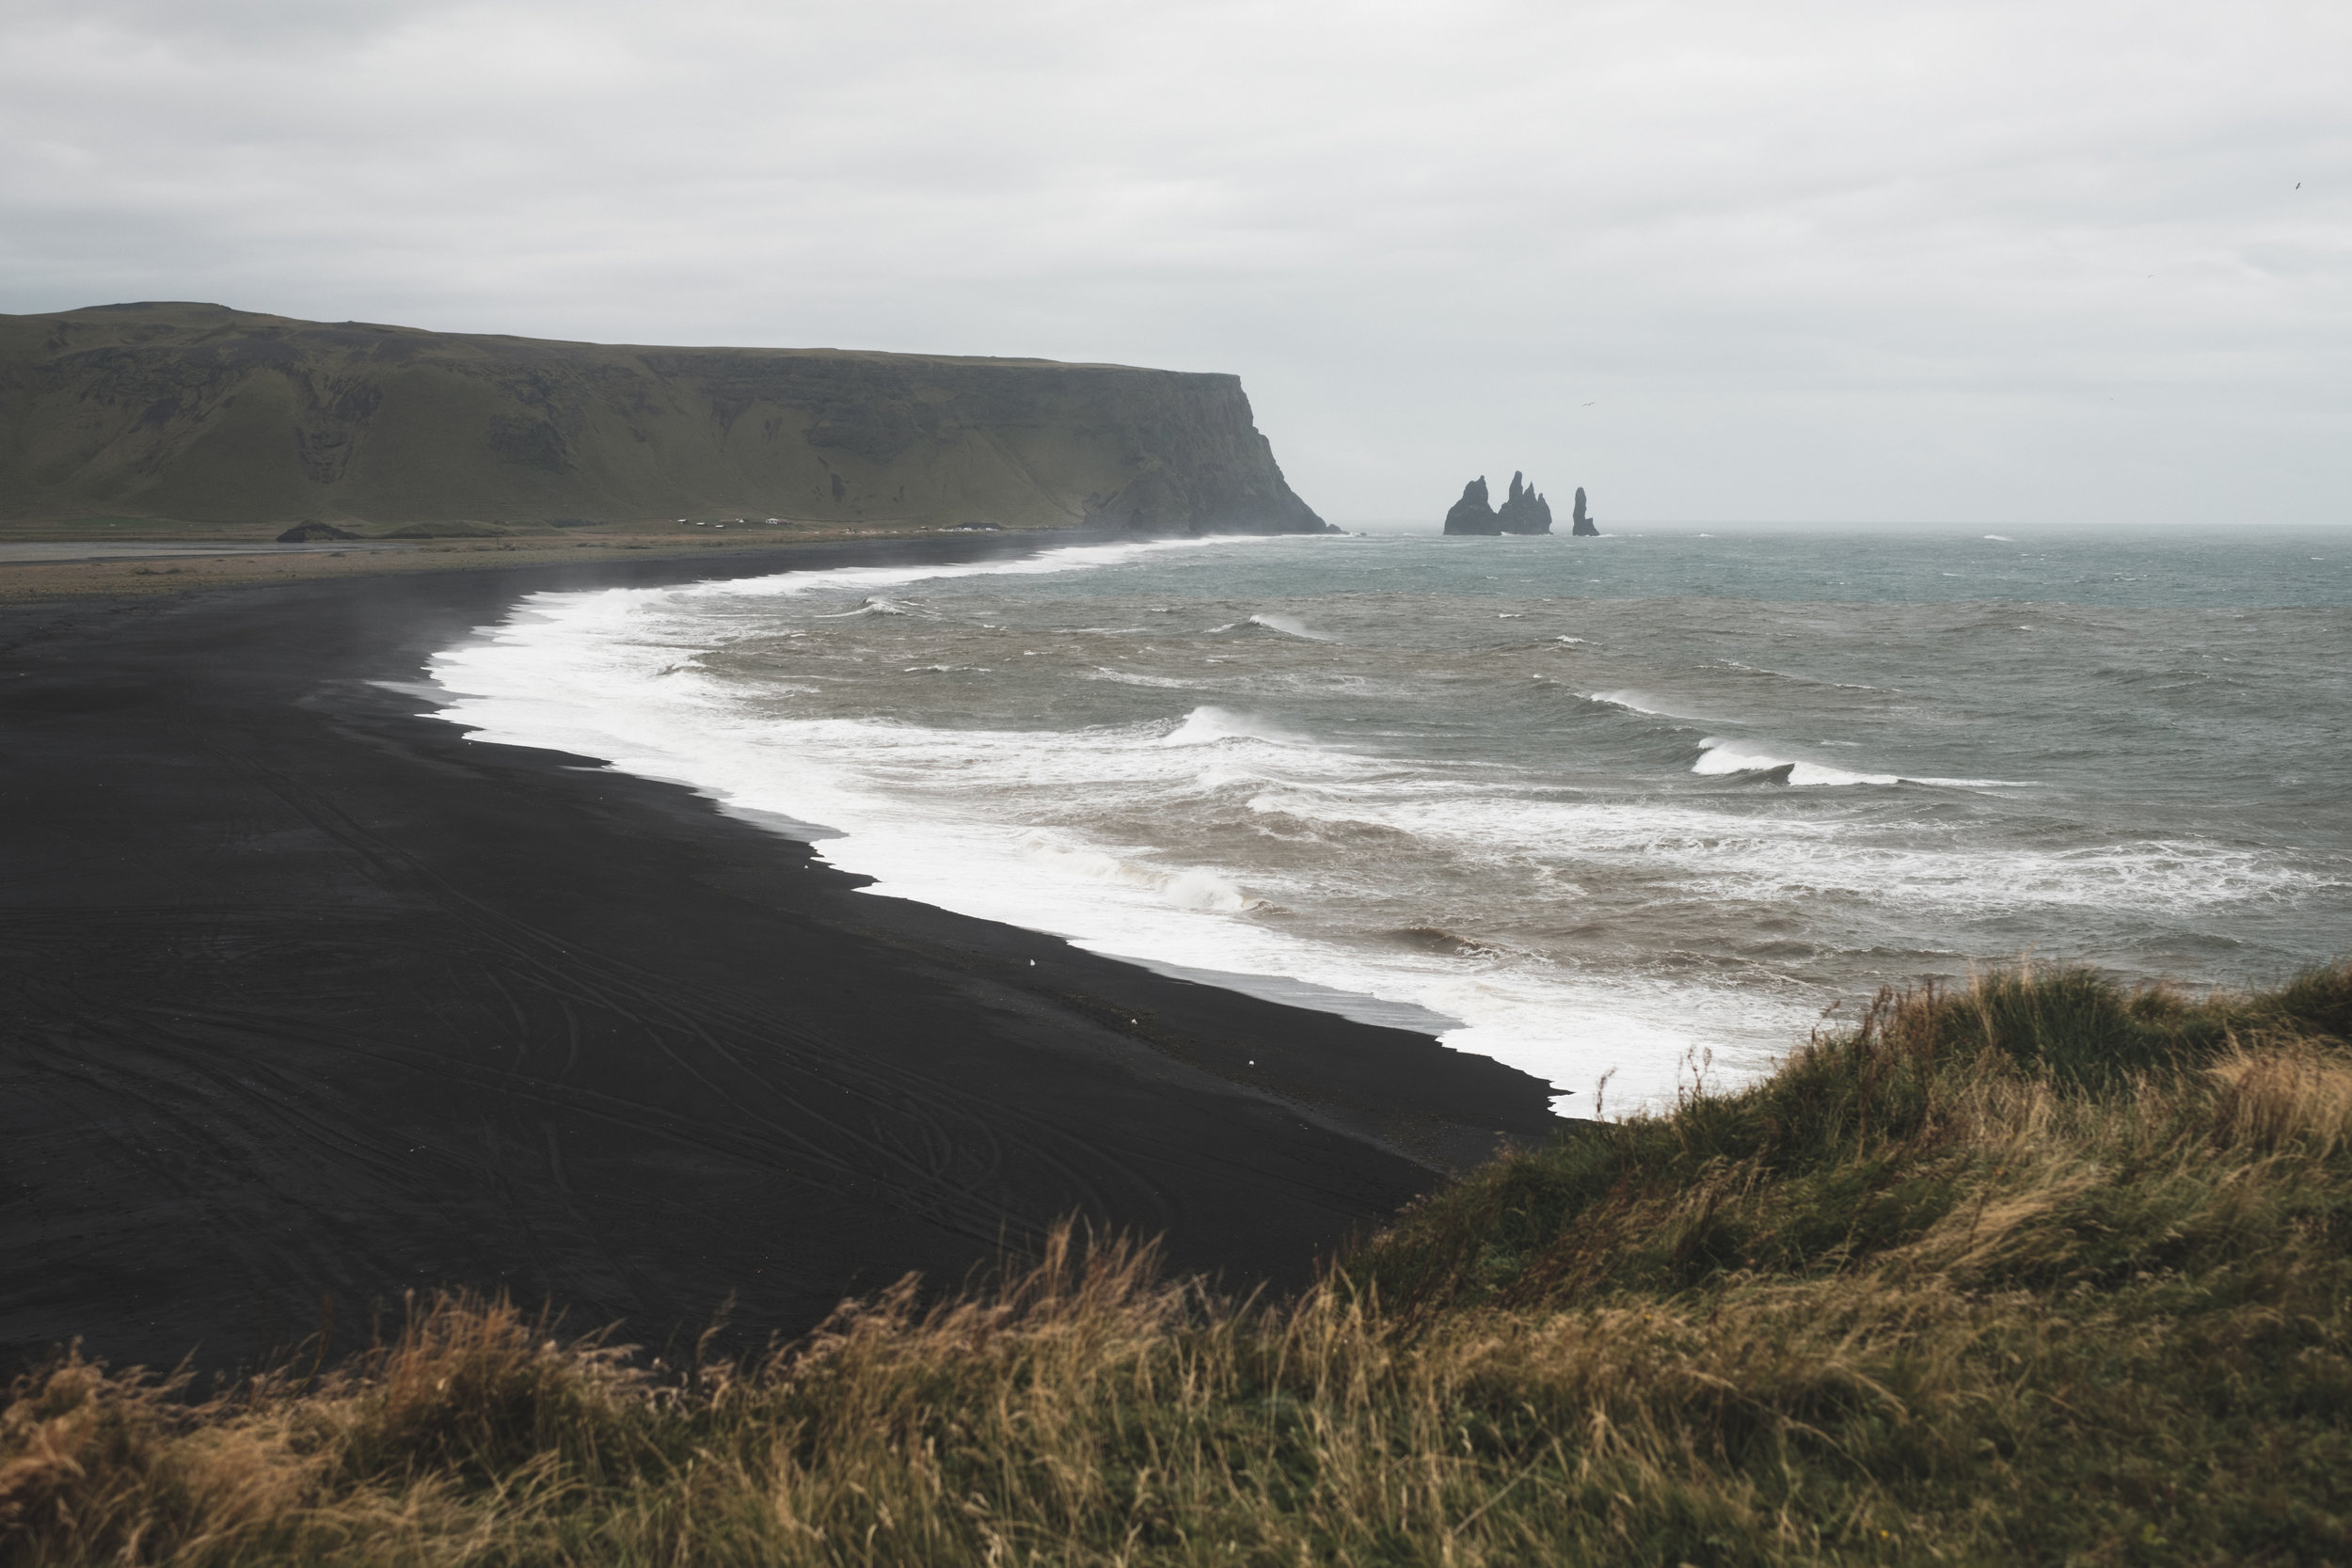 The waves come crashing in on a windy, cloudy, and rainy day at Reynisfjara and the Black Sand Beach.